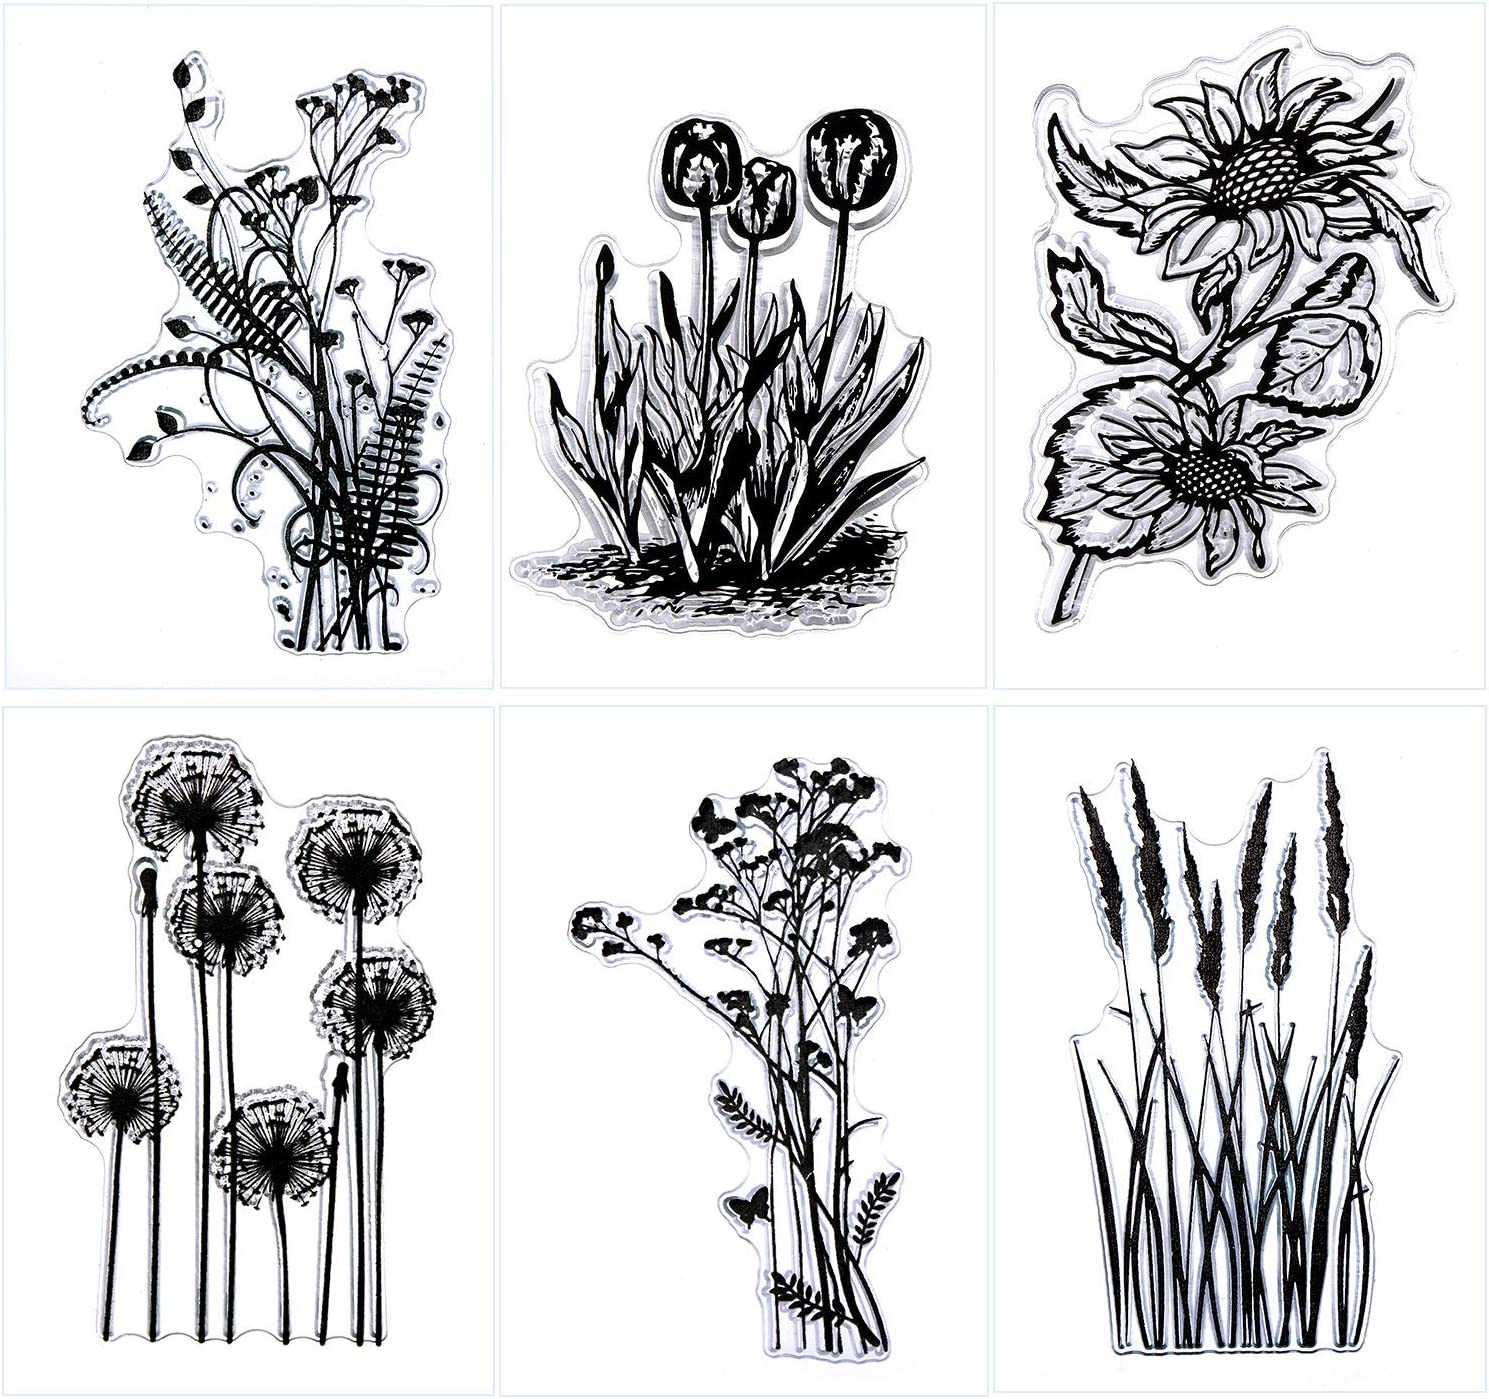 Outus 6 Sheets Silicone Clear Stamps Card Making Clear Stamps with Sunflower Dandelion Lavender Tulips Flowers and Leaves Designs for Card Making and DIY Scrapbooking